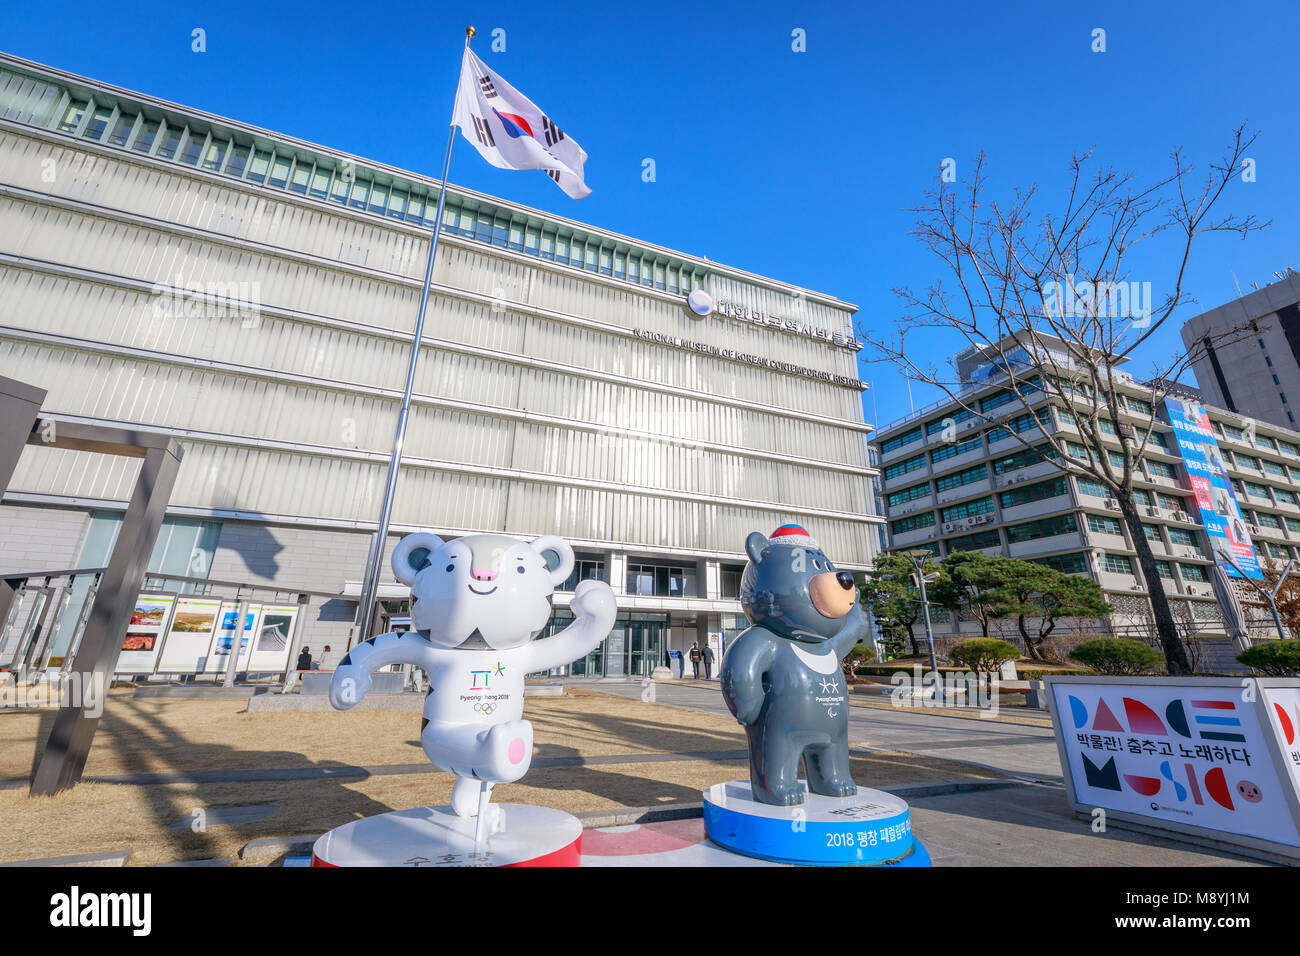 Seoul, South Korea - March 6, 2018 : Building of National Museum of Korean Contemporary History at Gwanghwamun plaza - Stock Image